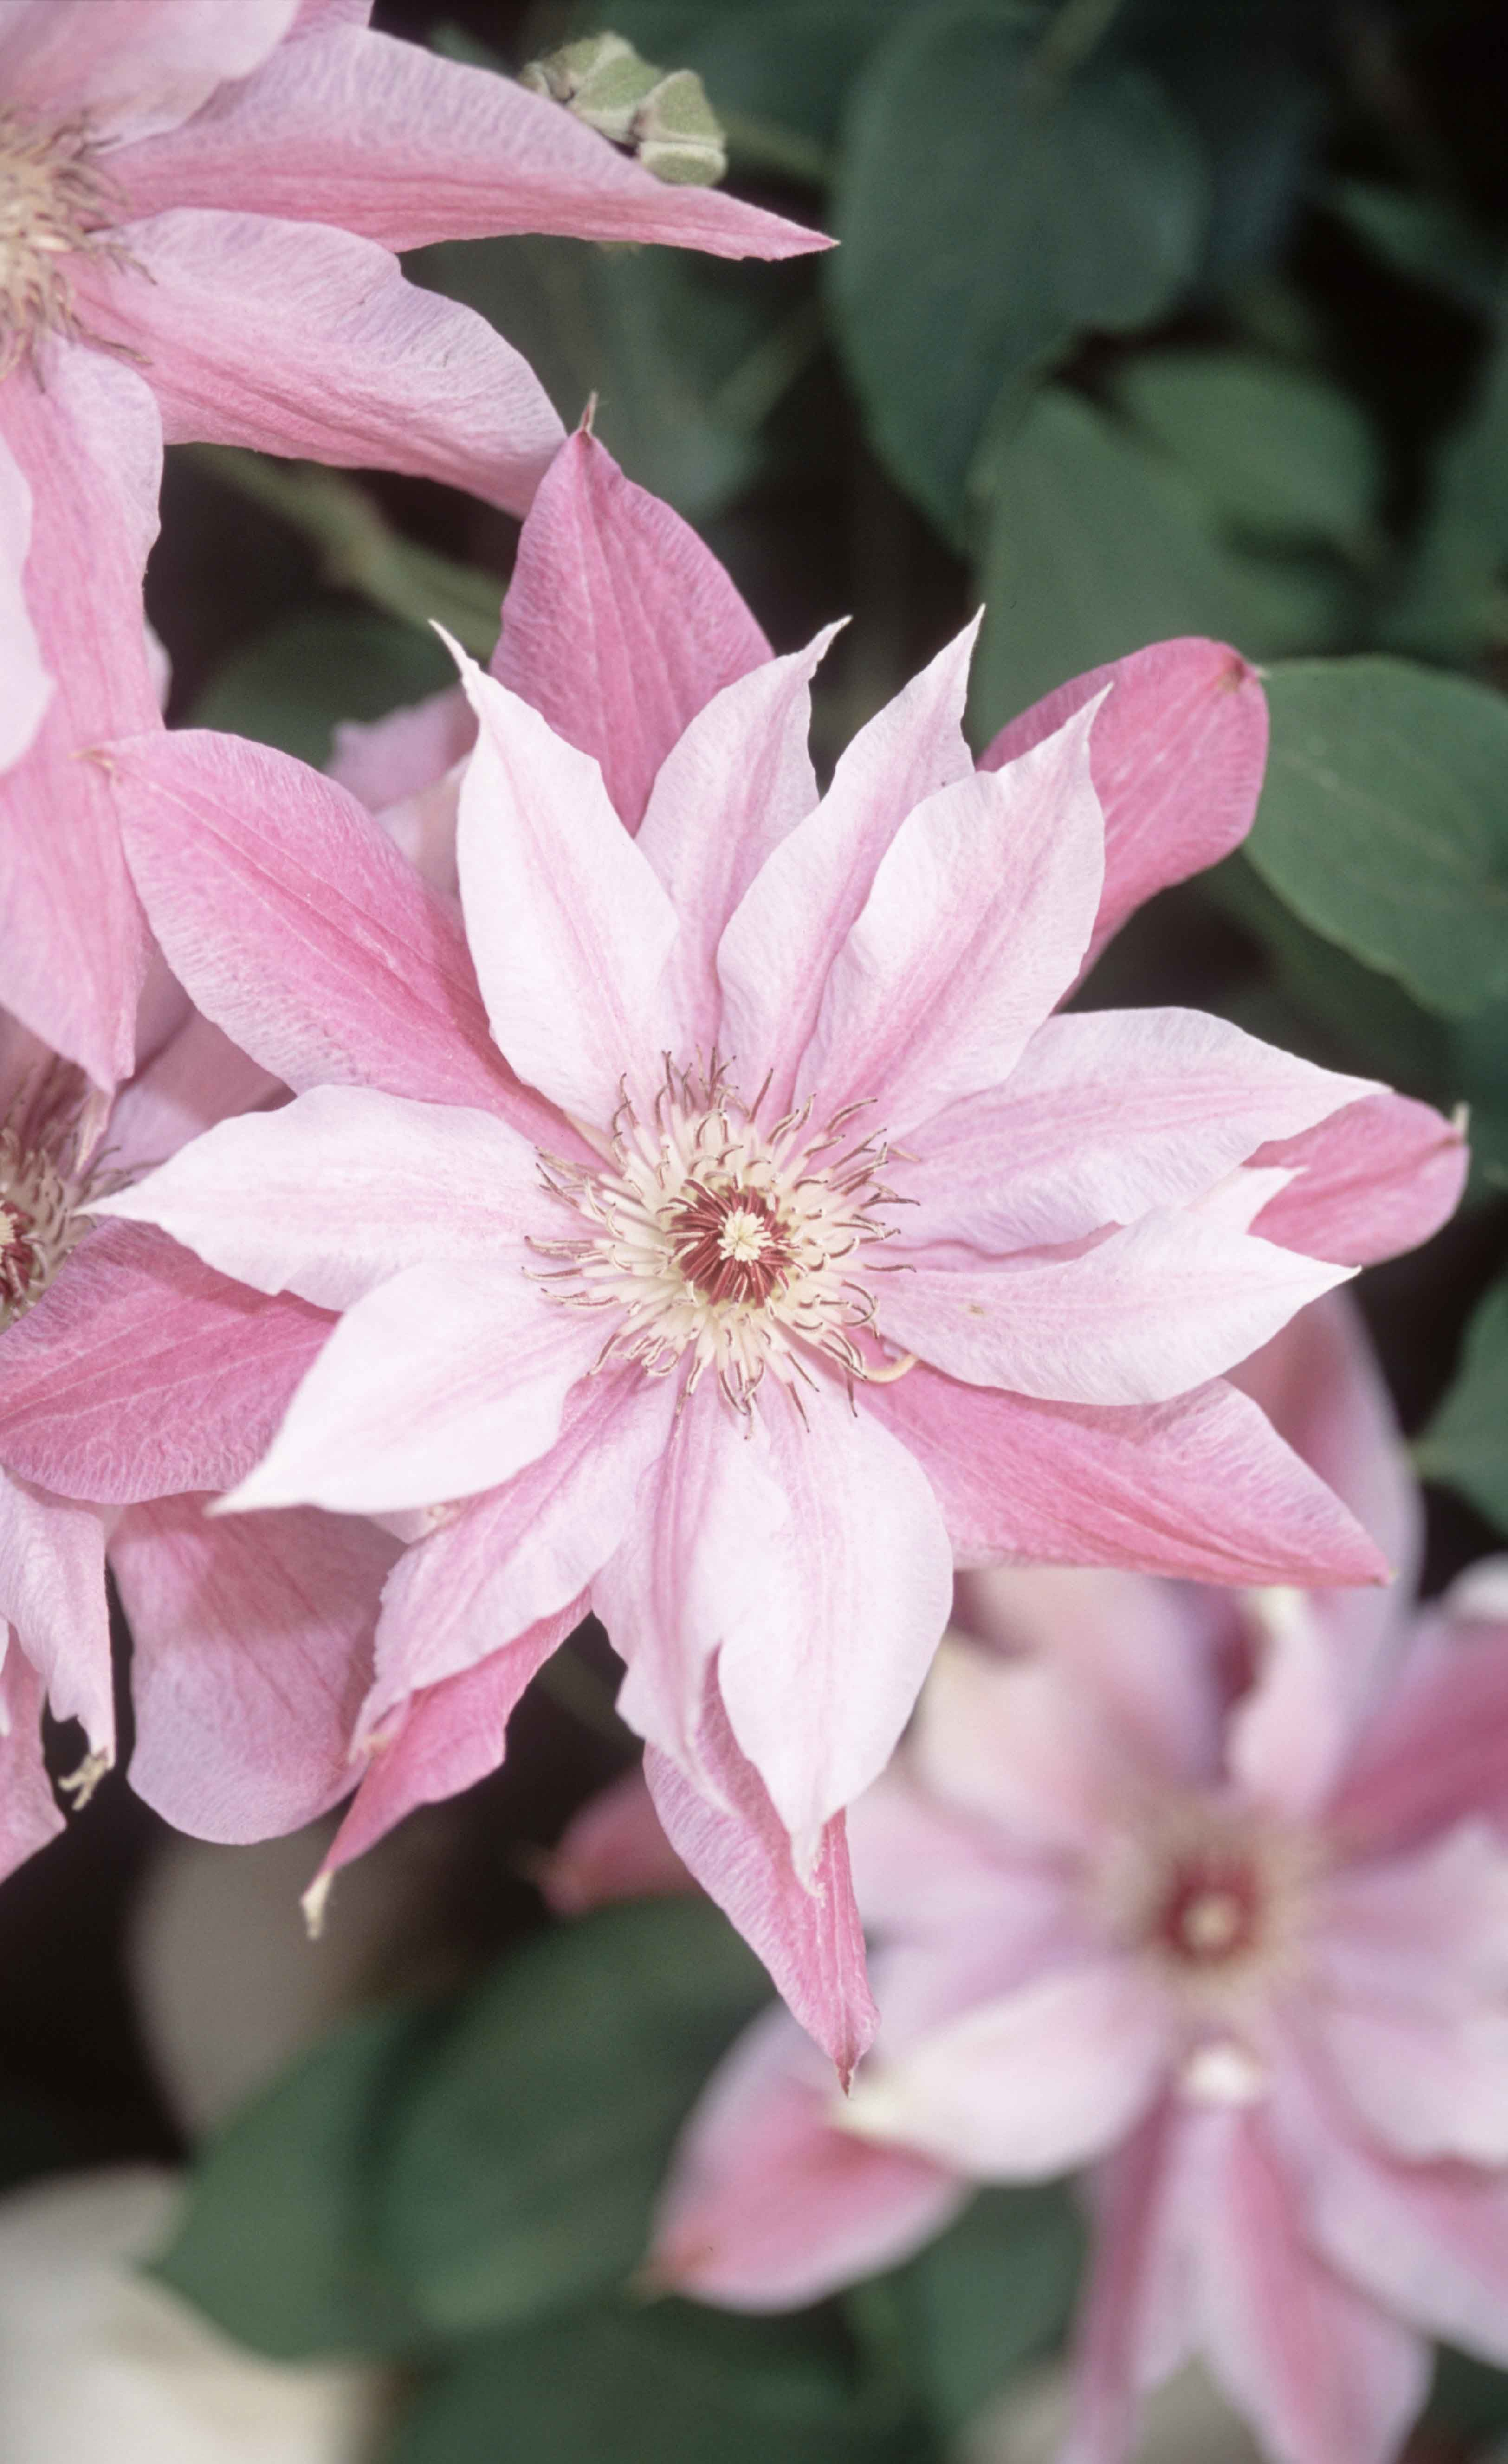 Clematis Love Jewelry mauve flowers with dark pink bars from late